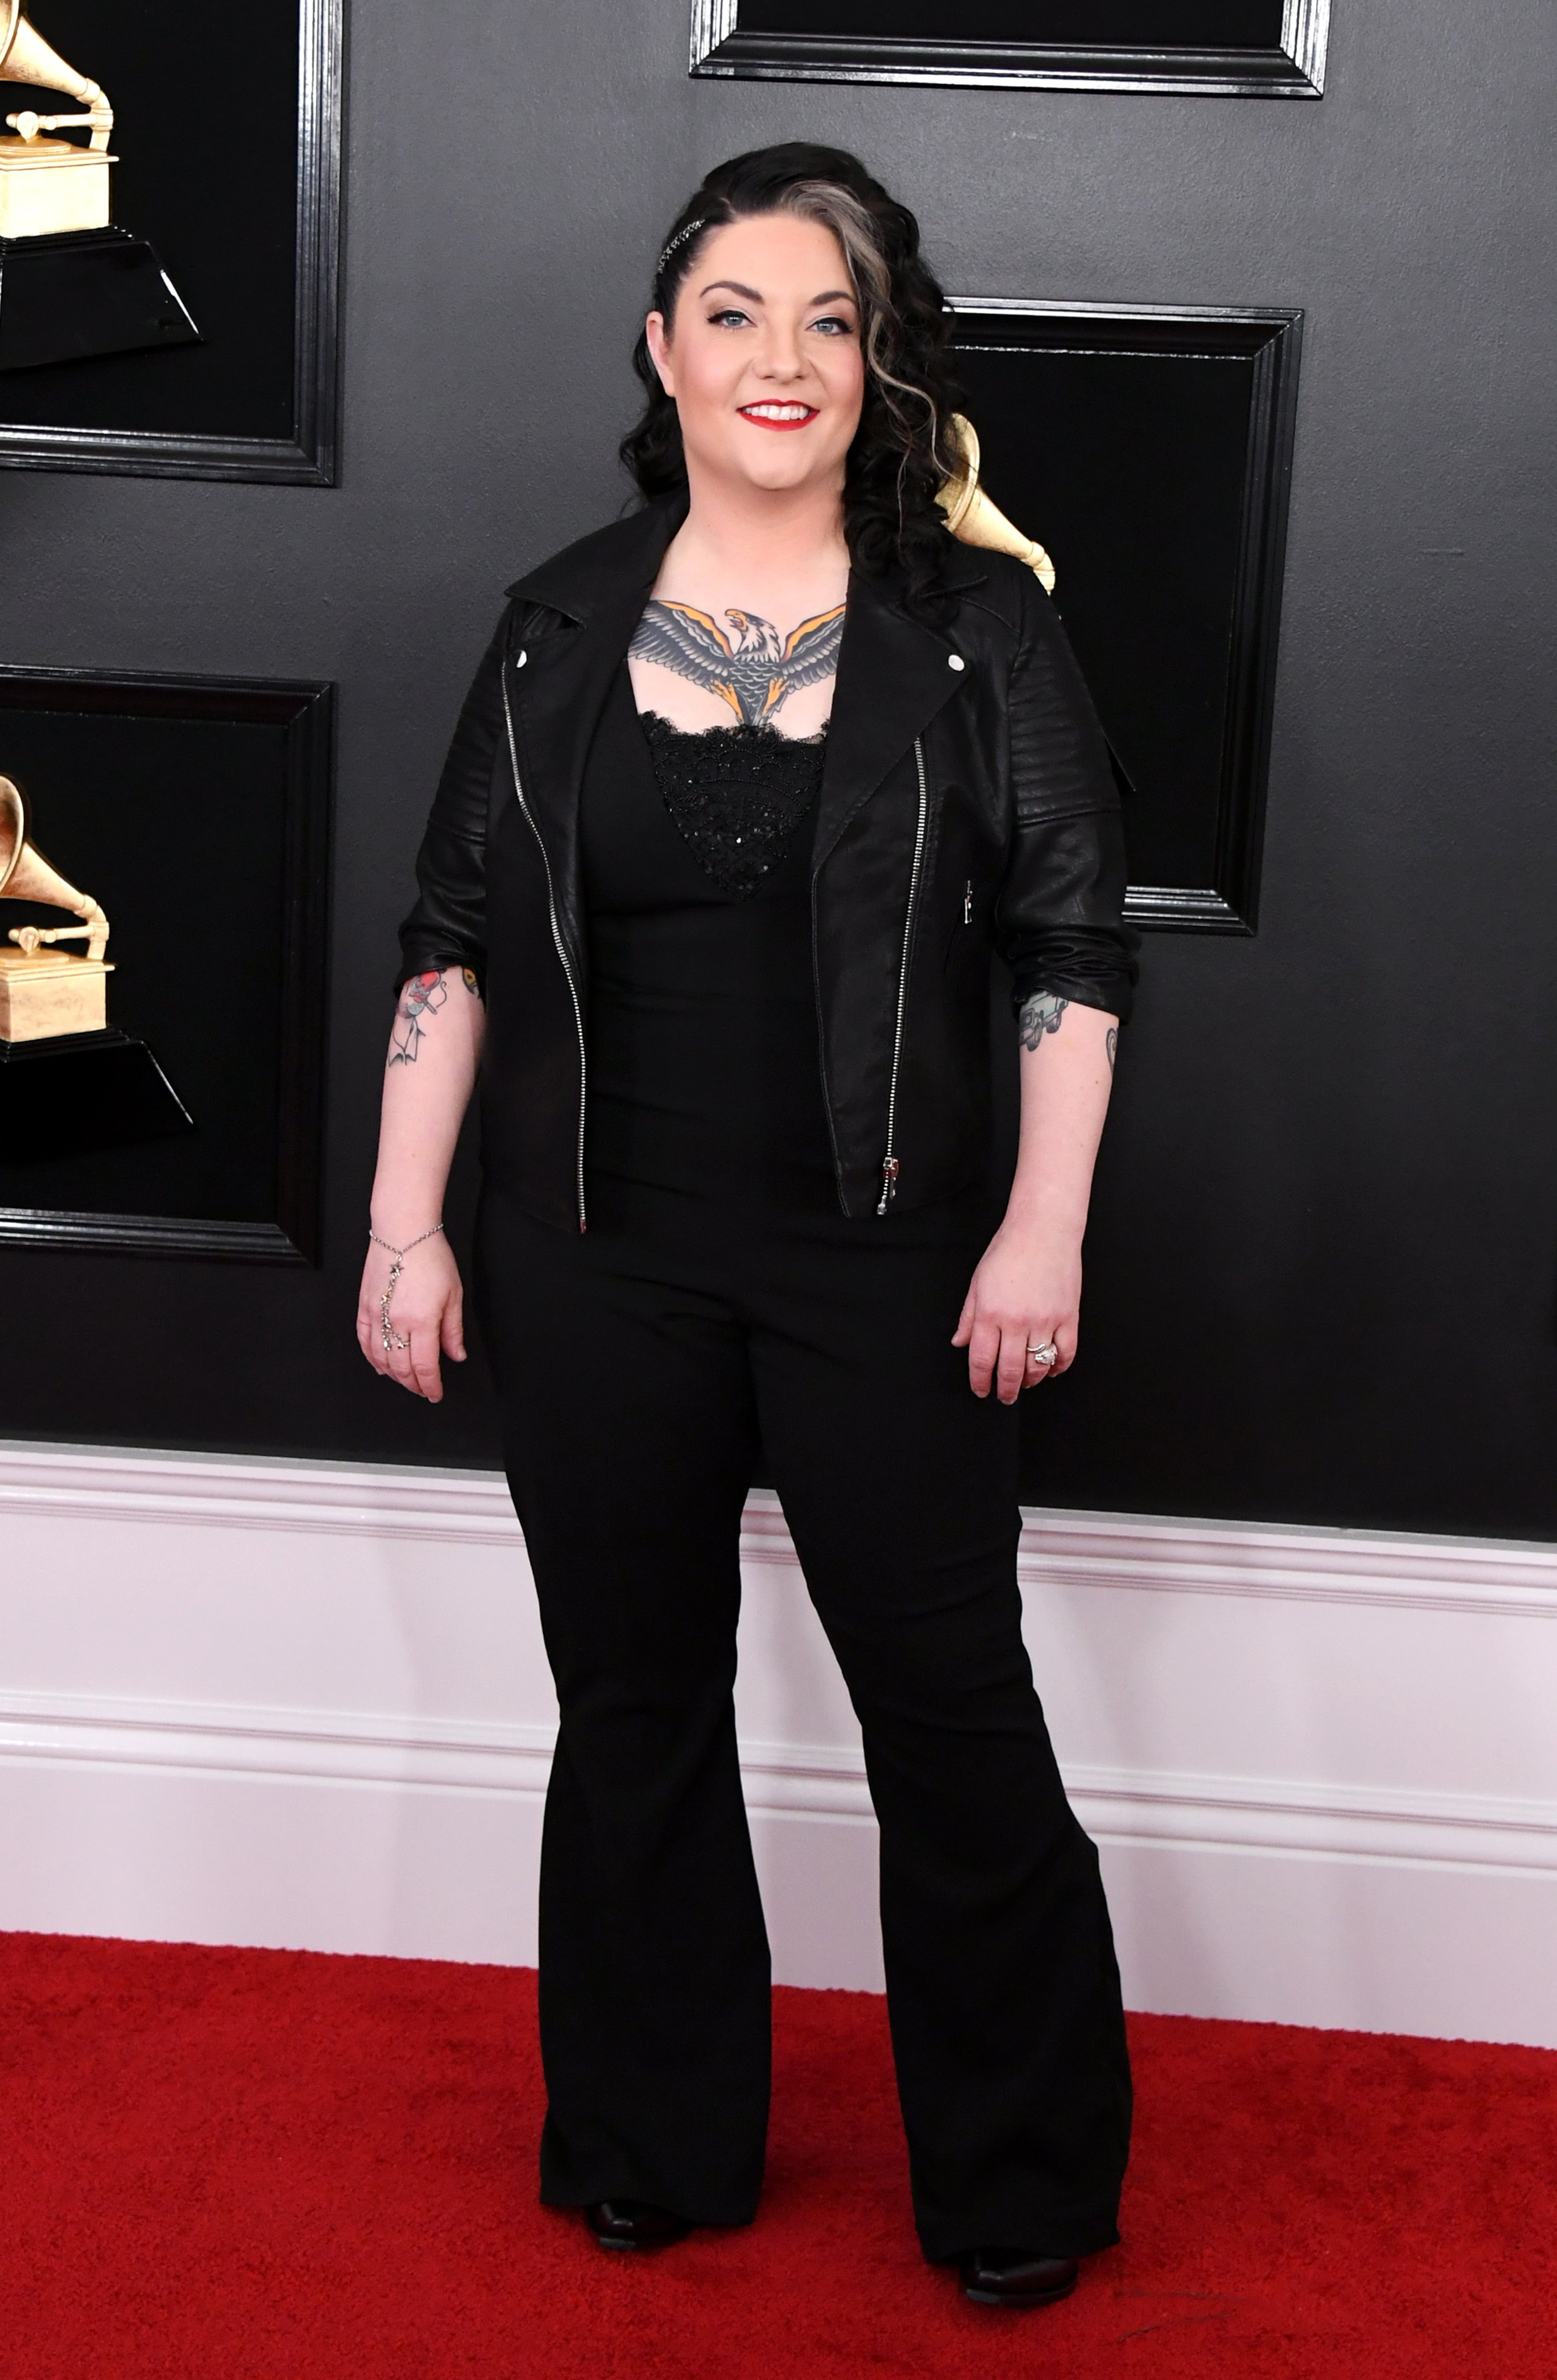 LOS ANGELES, CALIFORNIA - FEBRUARY 10: Ashley McBryde attends the 61st Annual GRAMMY Awards at Staples Center on February 10, 2019 in Los Angeles, California. (Photo by Jon Kopaloff/Getty Images)